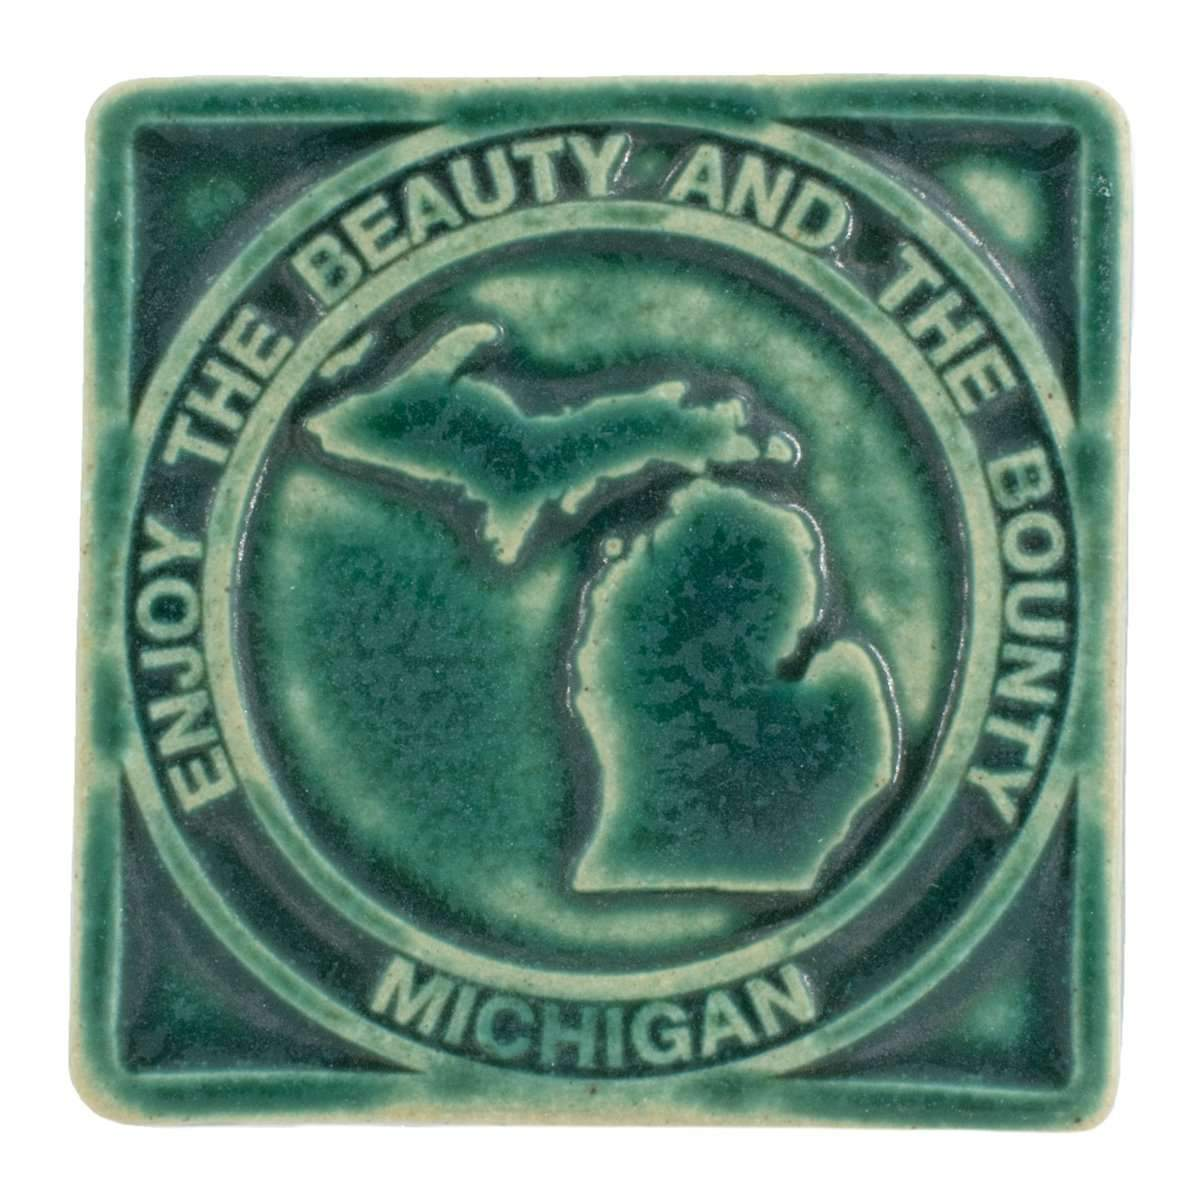 4x4 Beauty & Bounty Michigan Pewabic Tile - Pewabic Green - Pure Detroit